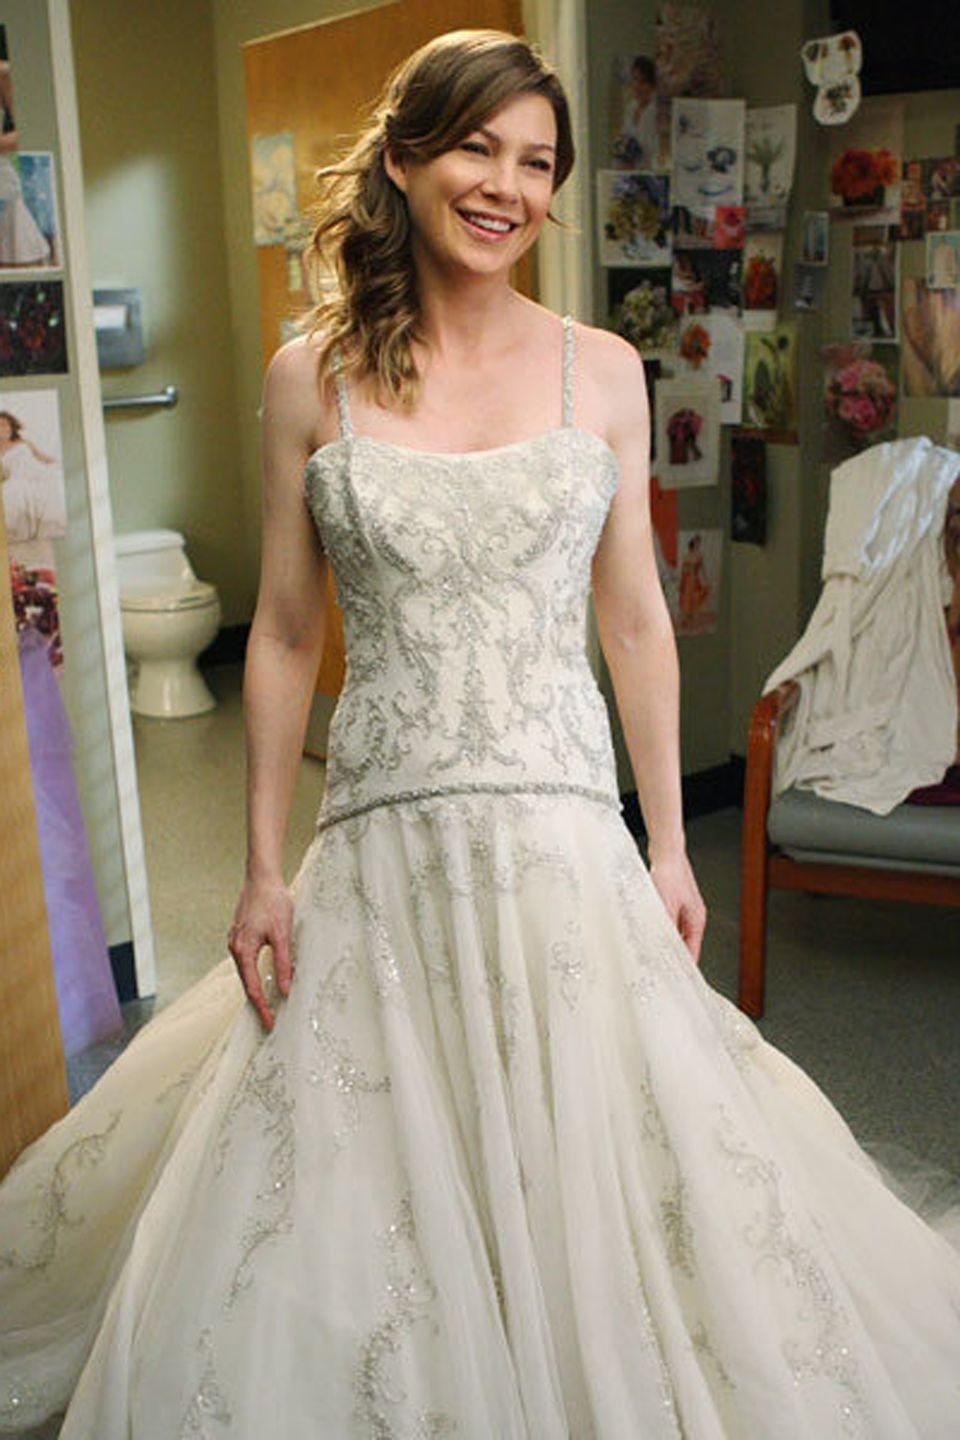 "<p>Meredith opted for an embellished dress with thin straps and a flared skirt <a href=""https://www.brides.com/story/meredith-grey-wedding-dress-greys-anatomy-kenneth-pool"" rel=""nofollow noopener"" target=""_blank"" data-ylk=""slk:by Kenneth Pool"" class=""link rapid-noclick-resp"">by Kenneth Pool</a> to marry Derek Shepard. The two doctors wed in season 5. </p>"